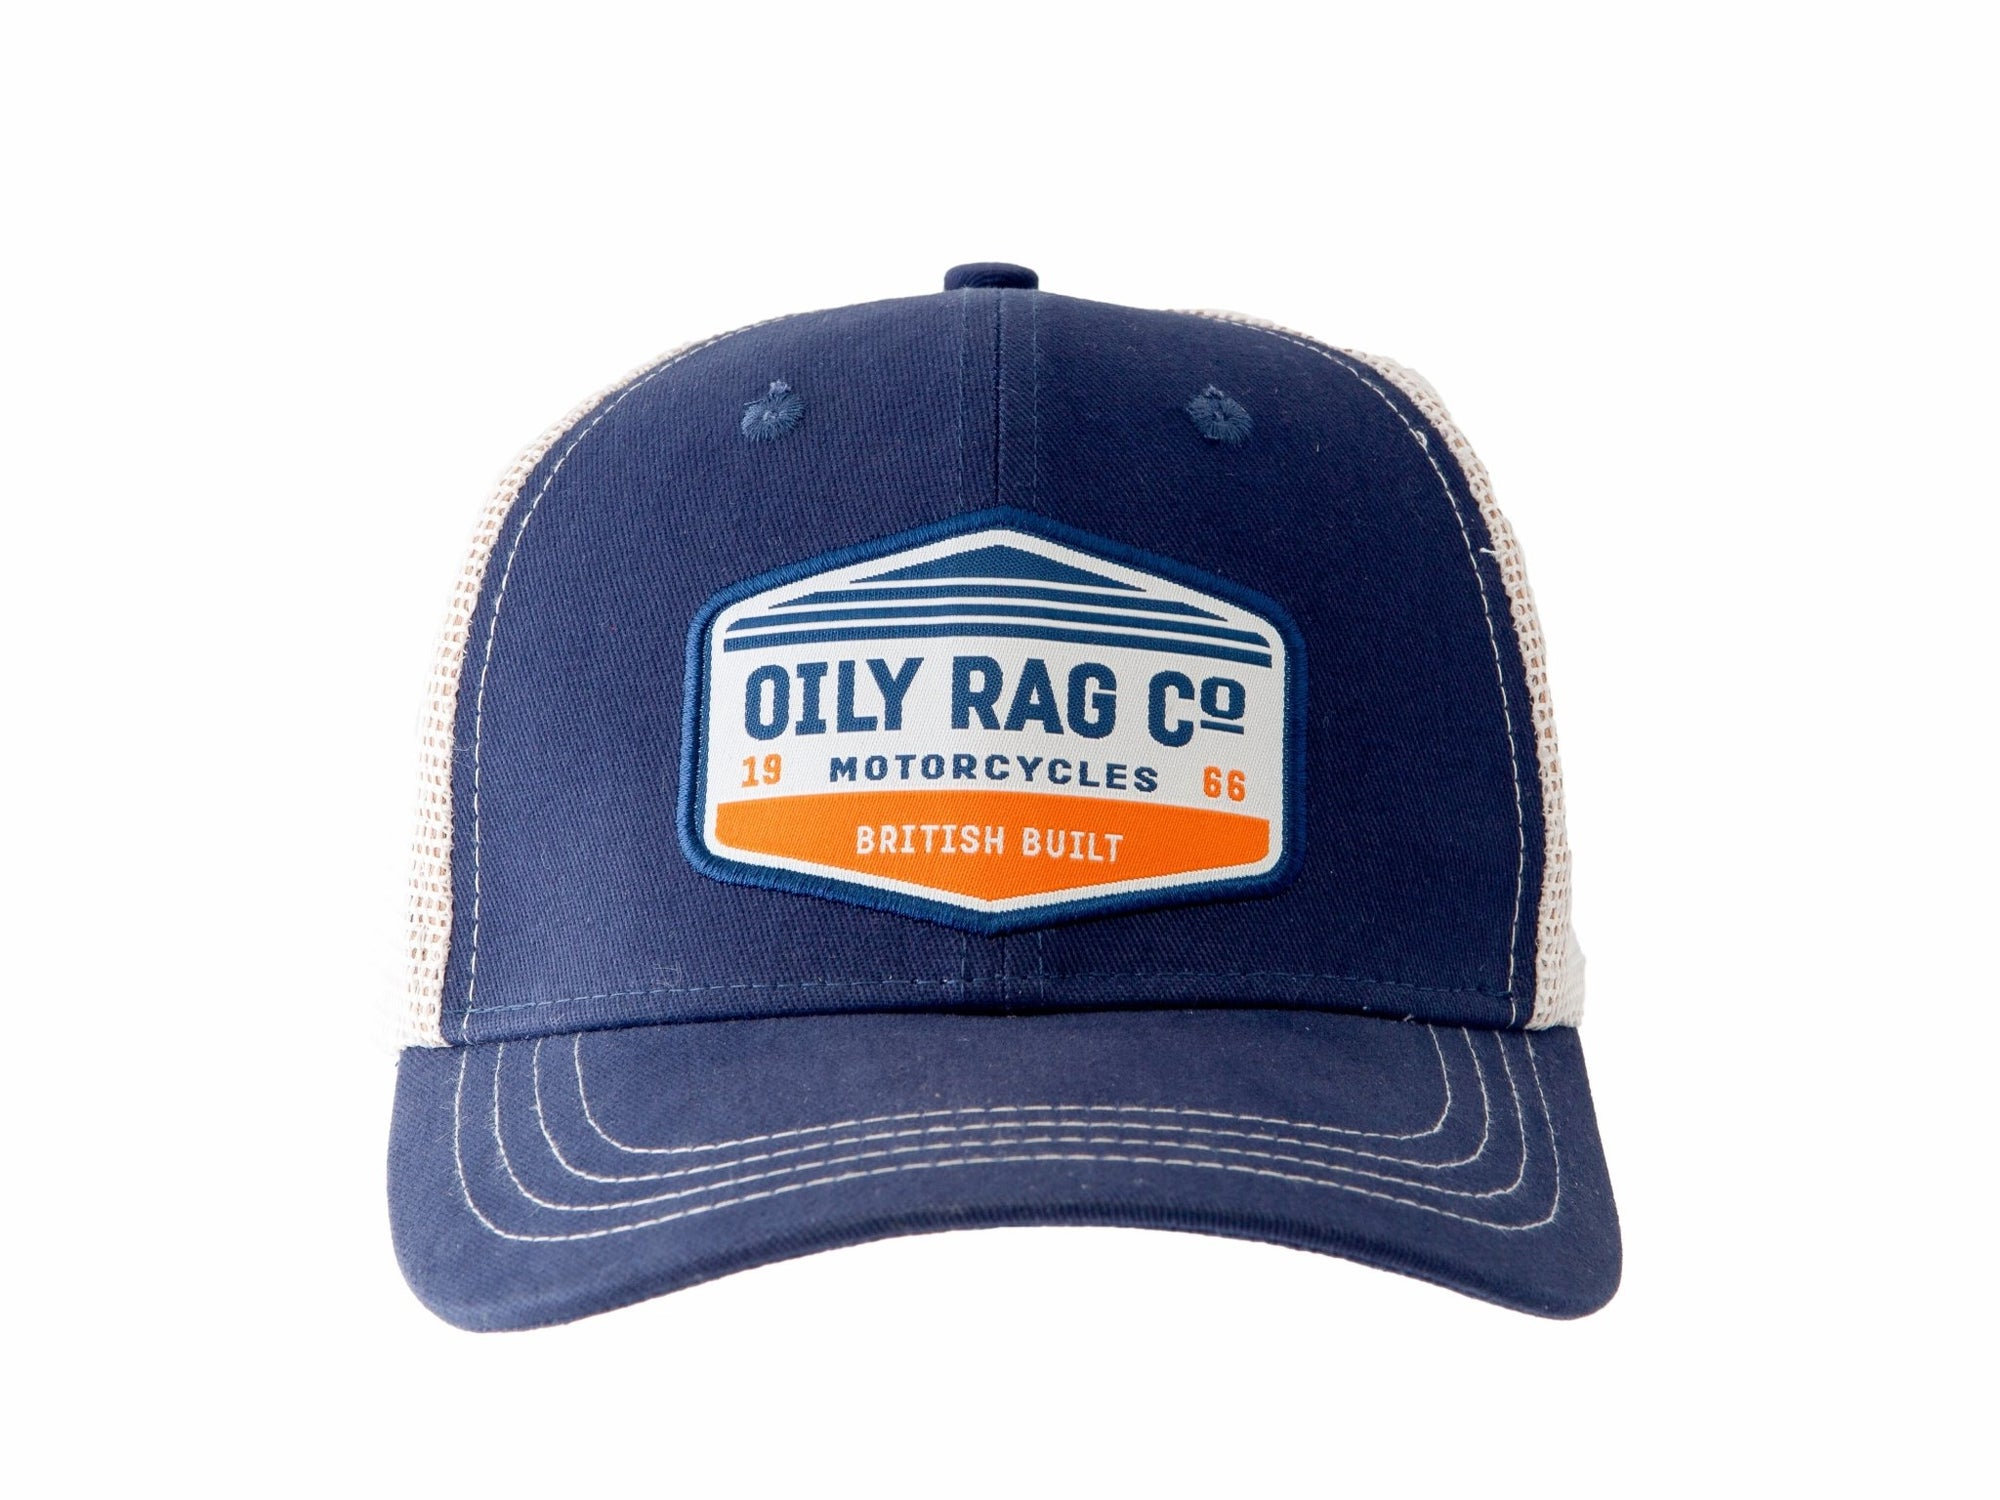 Oily Rag Clothing - Oily Rag Clothing Motorräder Trucker Cap - Caps - Salt Flats Clothing